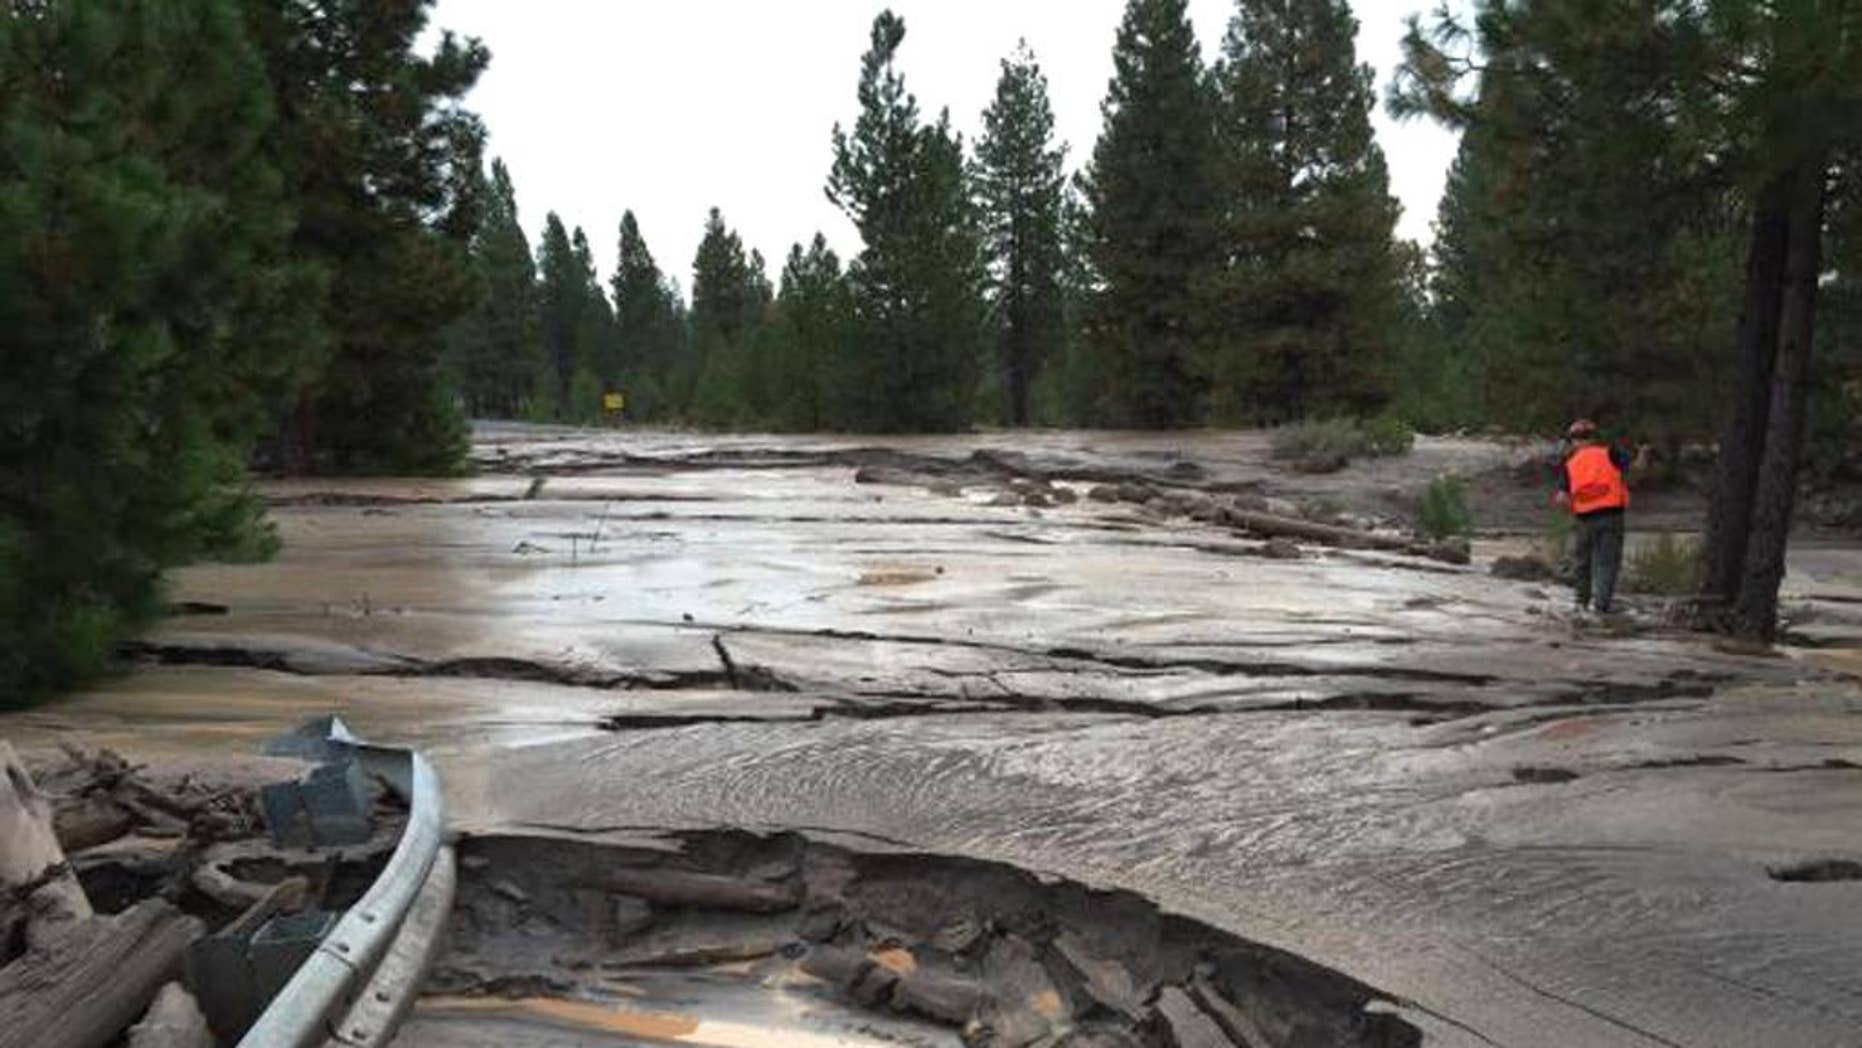 This Sunday, Sept. 21, 2014 photo provided by the U.S. Forest Service shows a mud flow along Mud Creek Canyon in the Shasta-Trinity National Forest. The largest mudslide on Northern California's Mt. Shasta in two decades may be related to California's prolonged drought, experts said Sunday. The mudslide began Saturday, Sept. 20, 2014 after a glacier holding pockets of water either shifted or melted, releasing water down the southeastern side of Mt. Shasta, said Andrea Capps, a spokeswoman for Shasta-Trinity National Forest. (AP Photo/U.S. Forest Service)